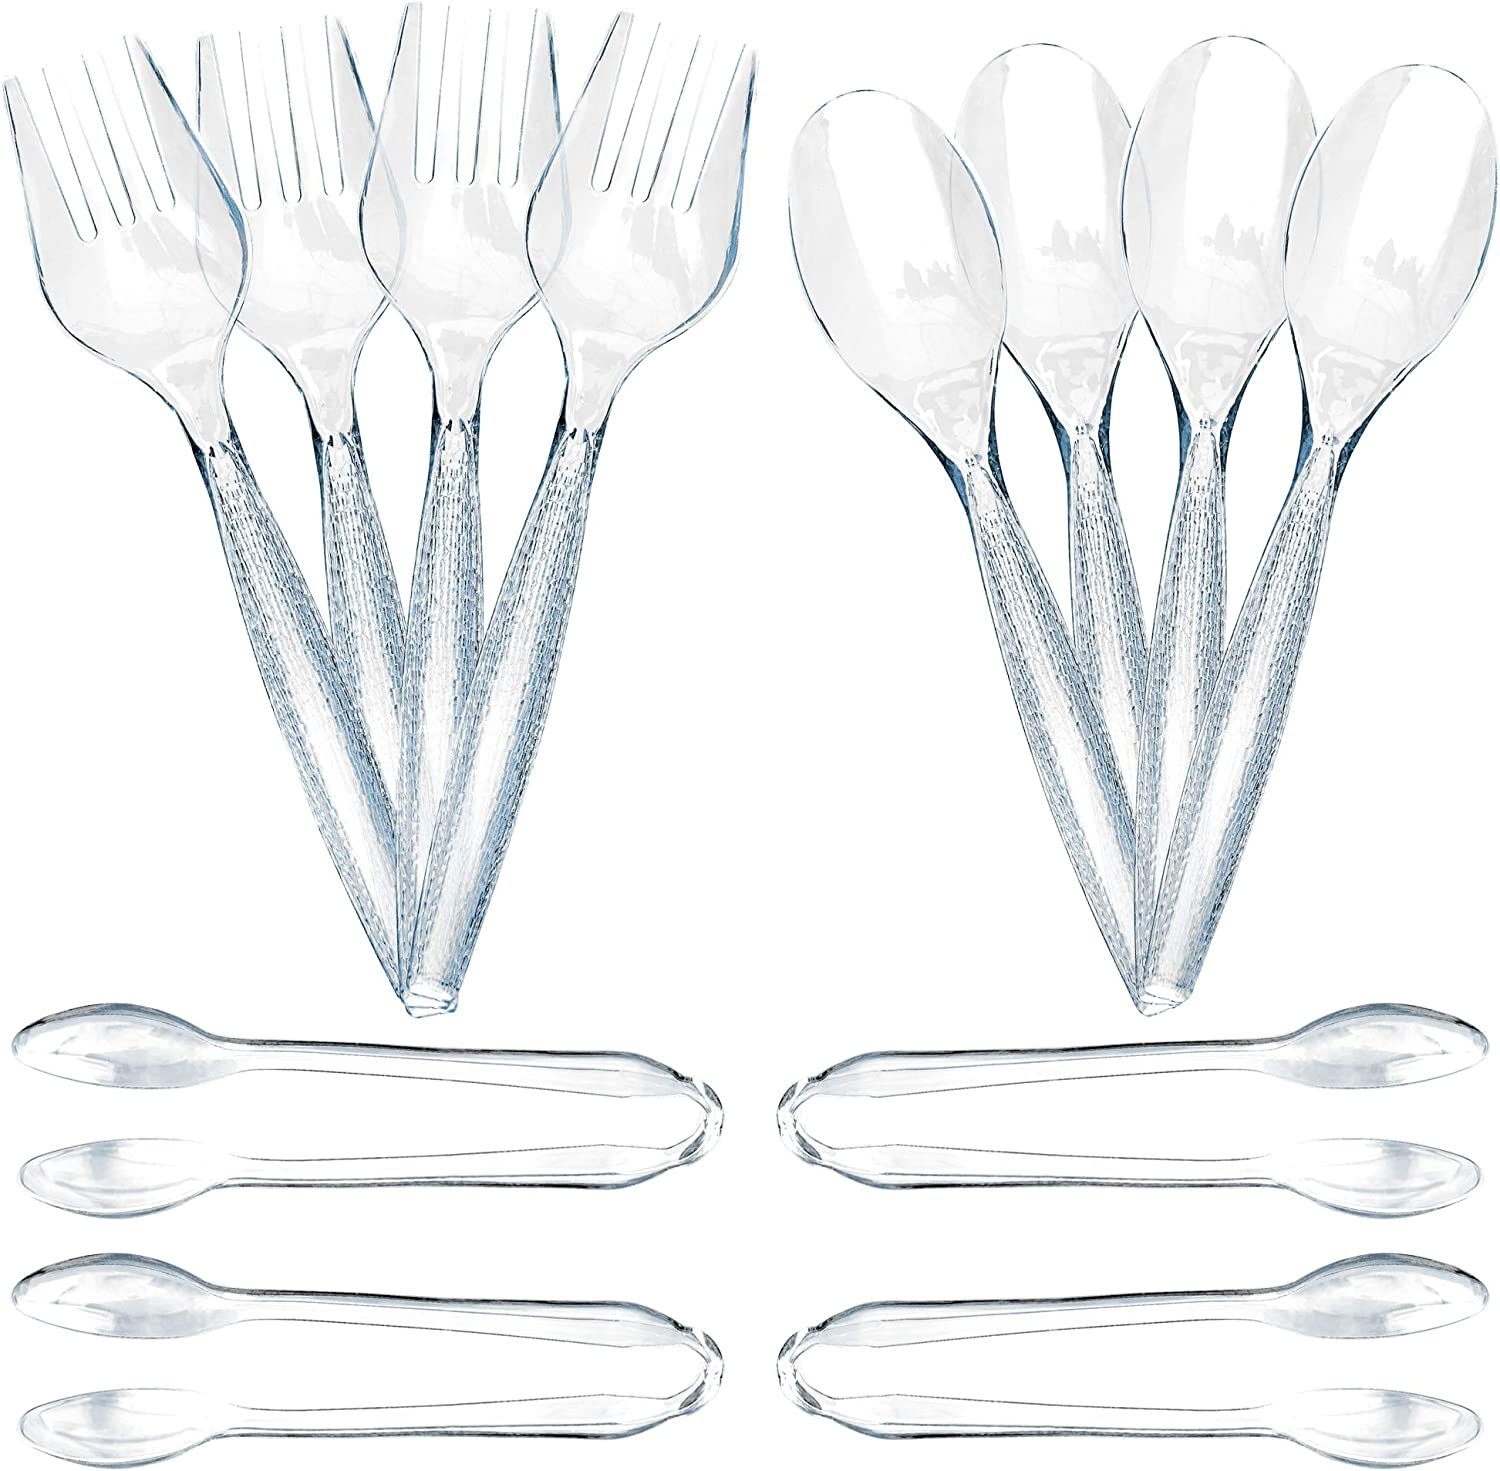 12 Piece Plastic Serving Utensils Set | Clear Disposable Serving Utensils | 4 Serving Spoons, 4 Serving Forks, 4 Serving Tongs | Party Serving Spoon Set